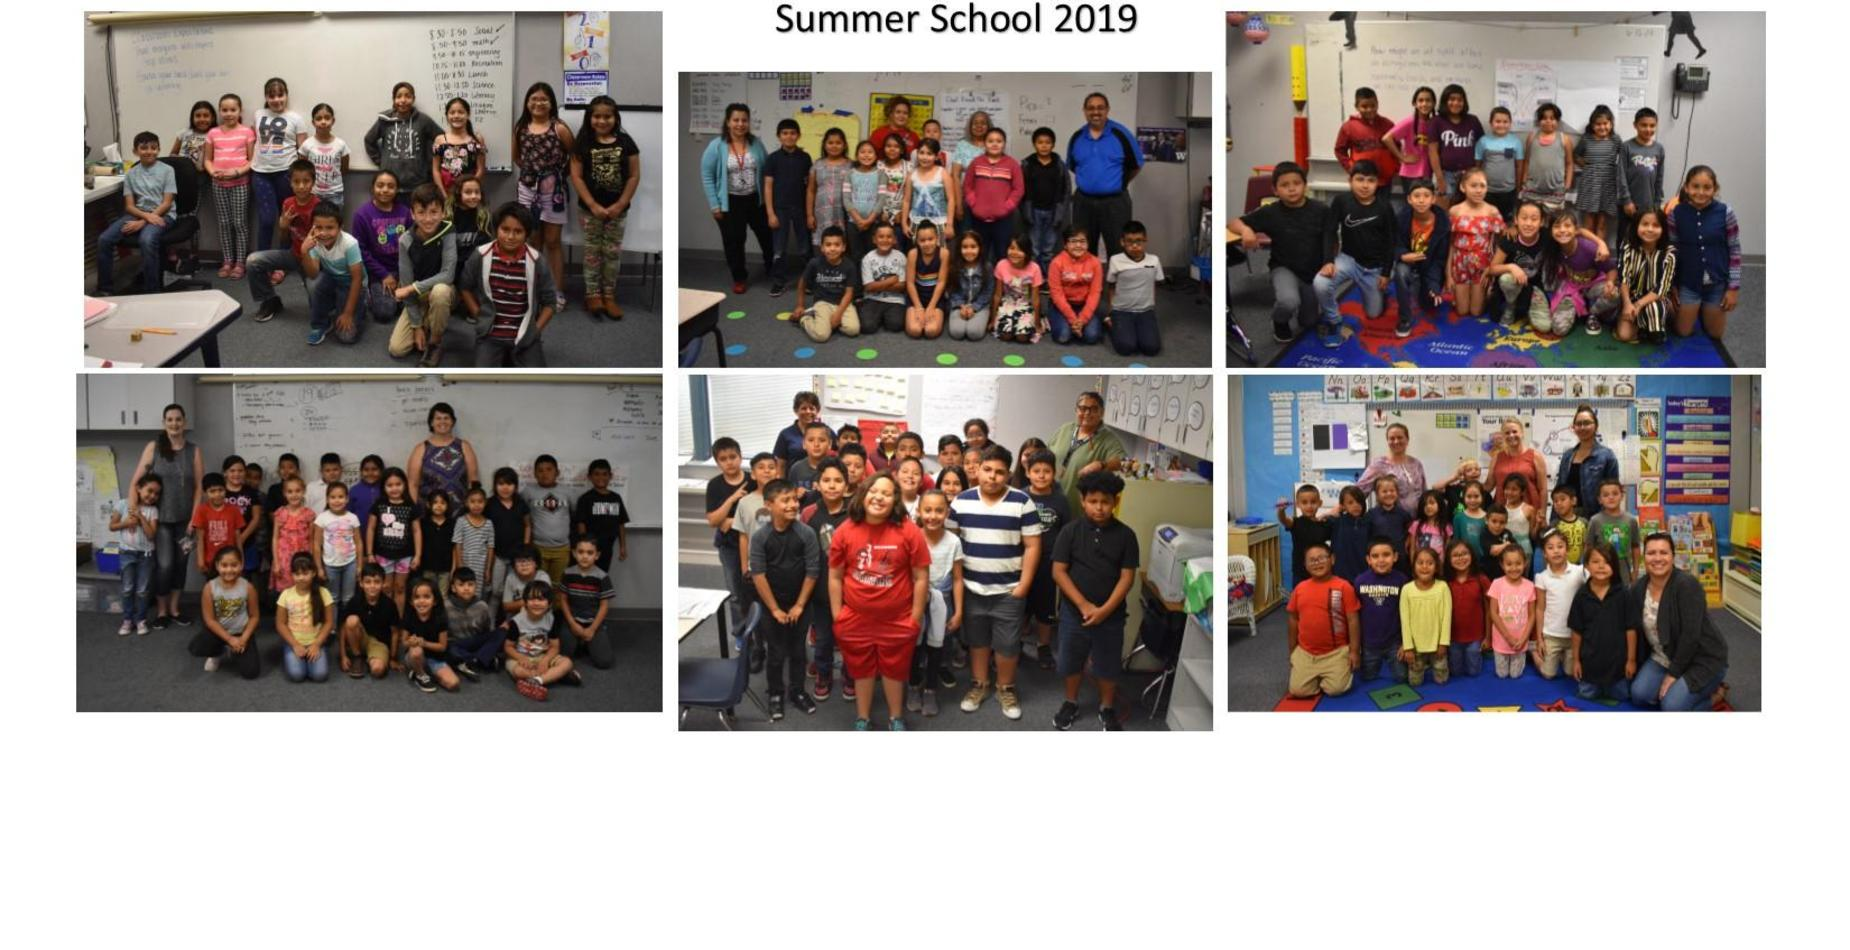 Our six summer school classes with the students and their teachers.